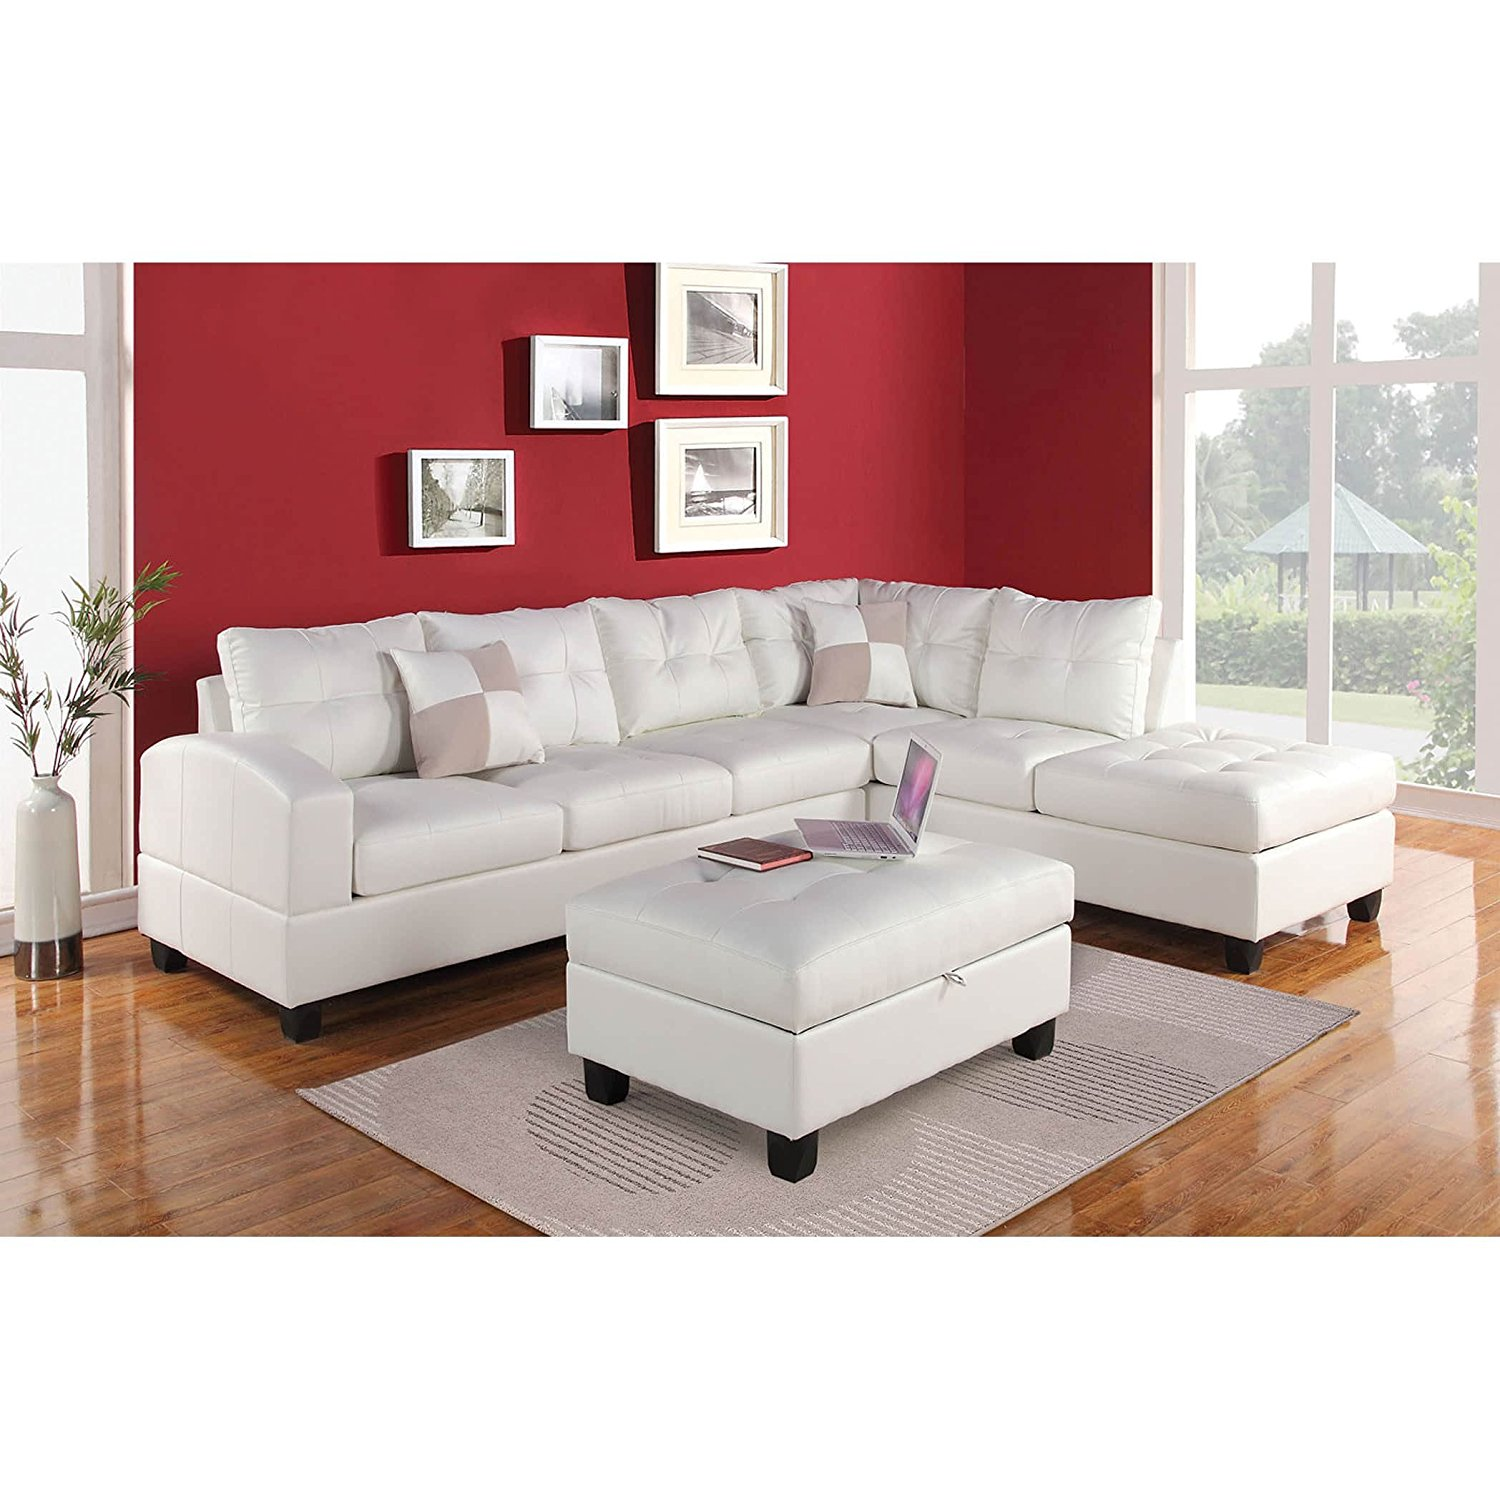 ACME Furniture Kiva 51175 Sectional Sofa with 2 Pillows, White Bonded Leather Match